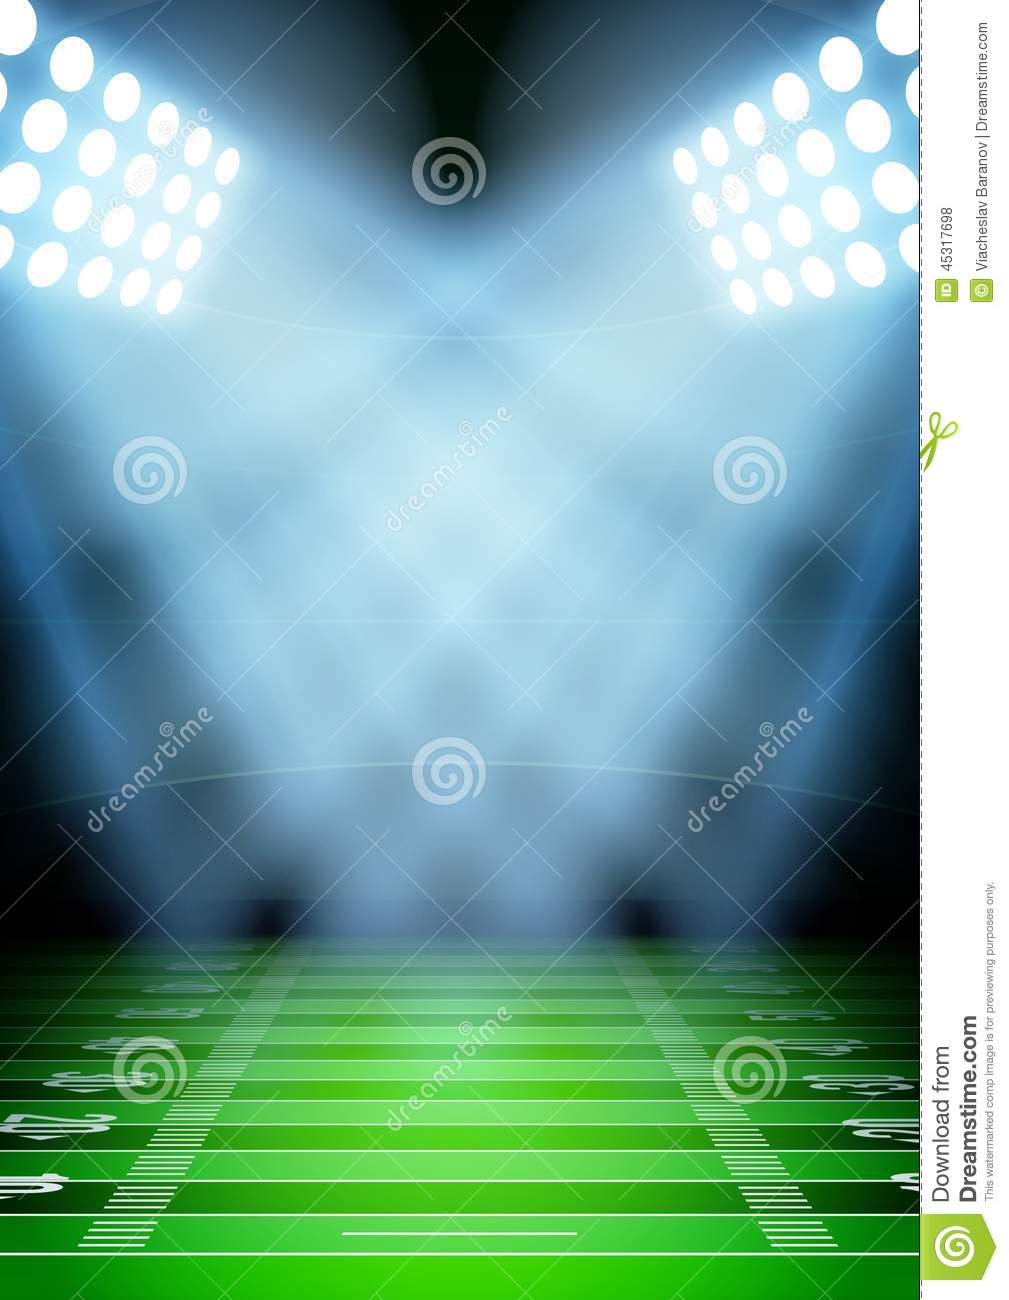 background for posters night football stadium in stock vector